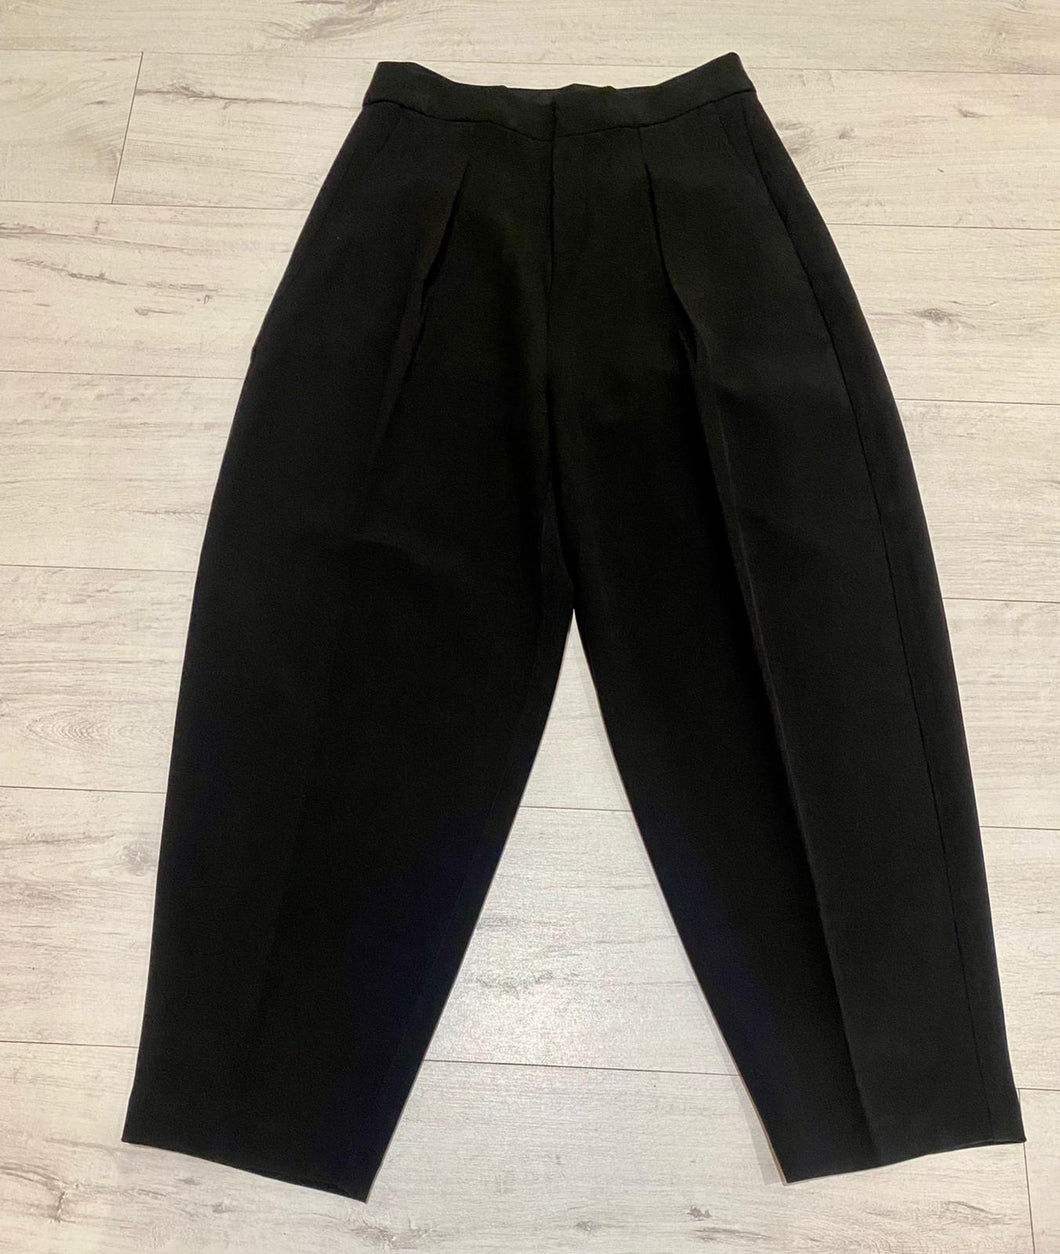 Inwear Black Peg Leg Trouser